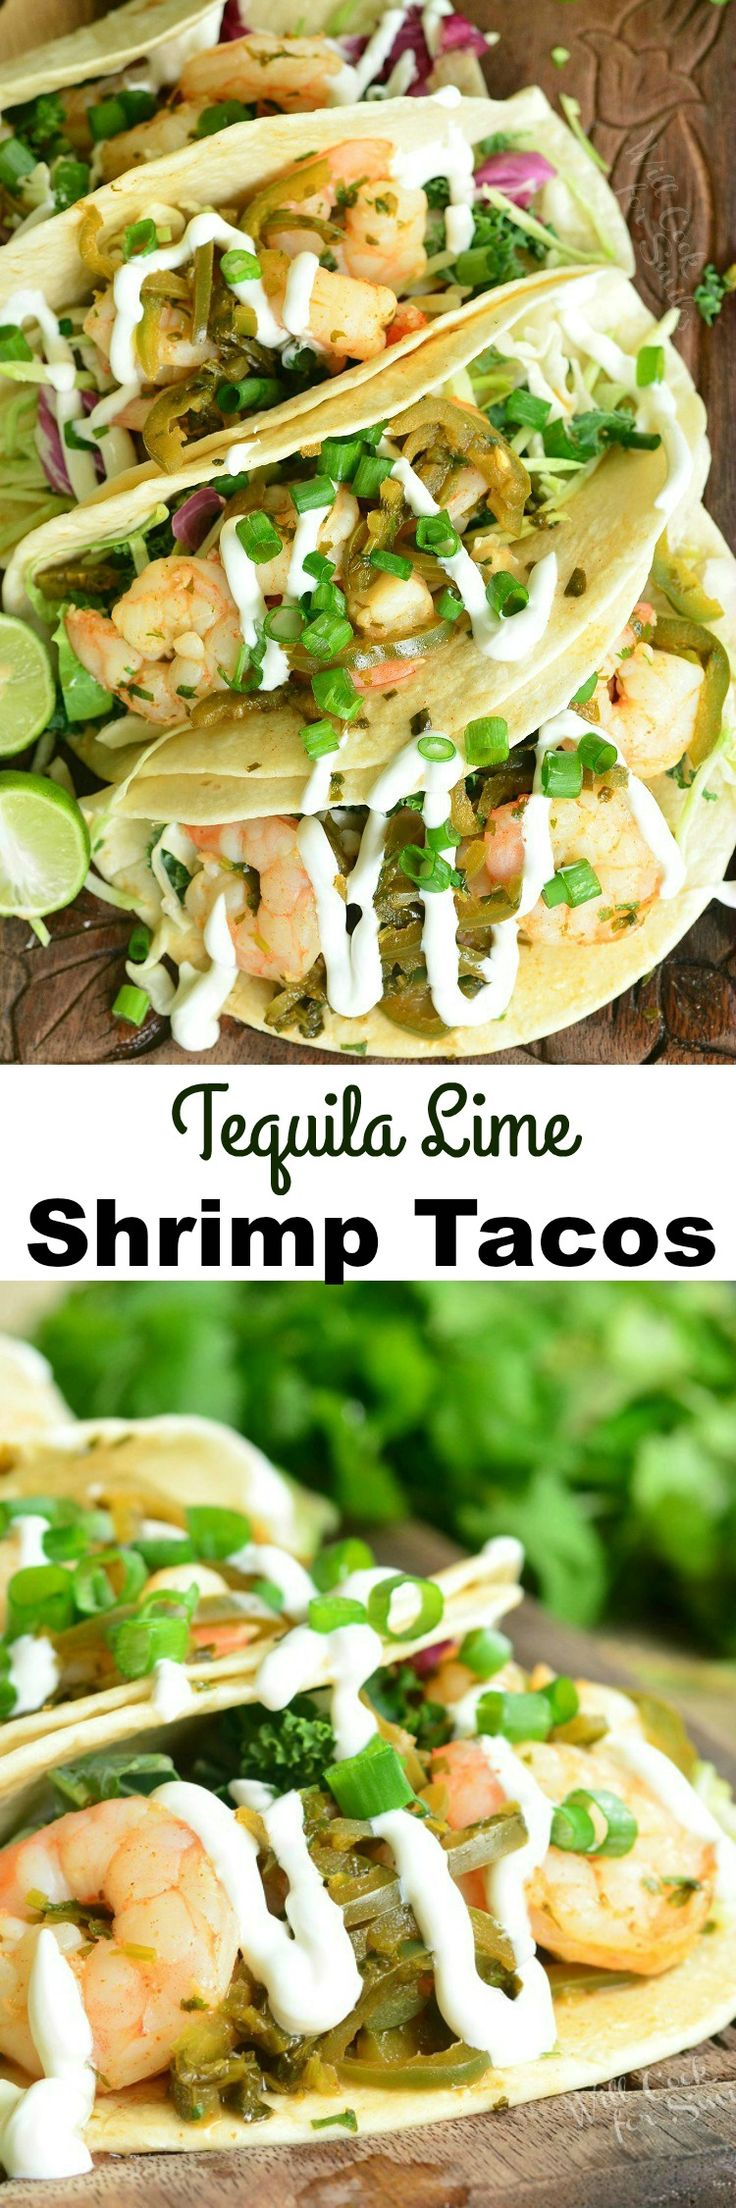 Tequila Lime Shrimp Tacos. Fantastic, light shrimp tacos made in simply and in about 30 minutes.  from willcookforsmiles.com #taco #seafood